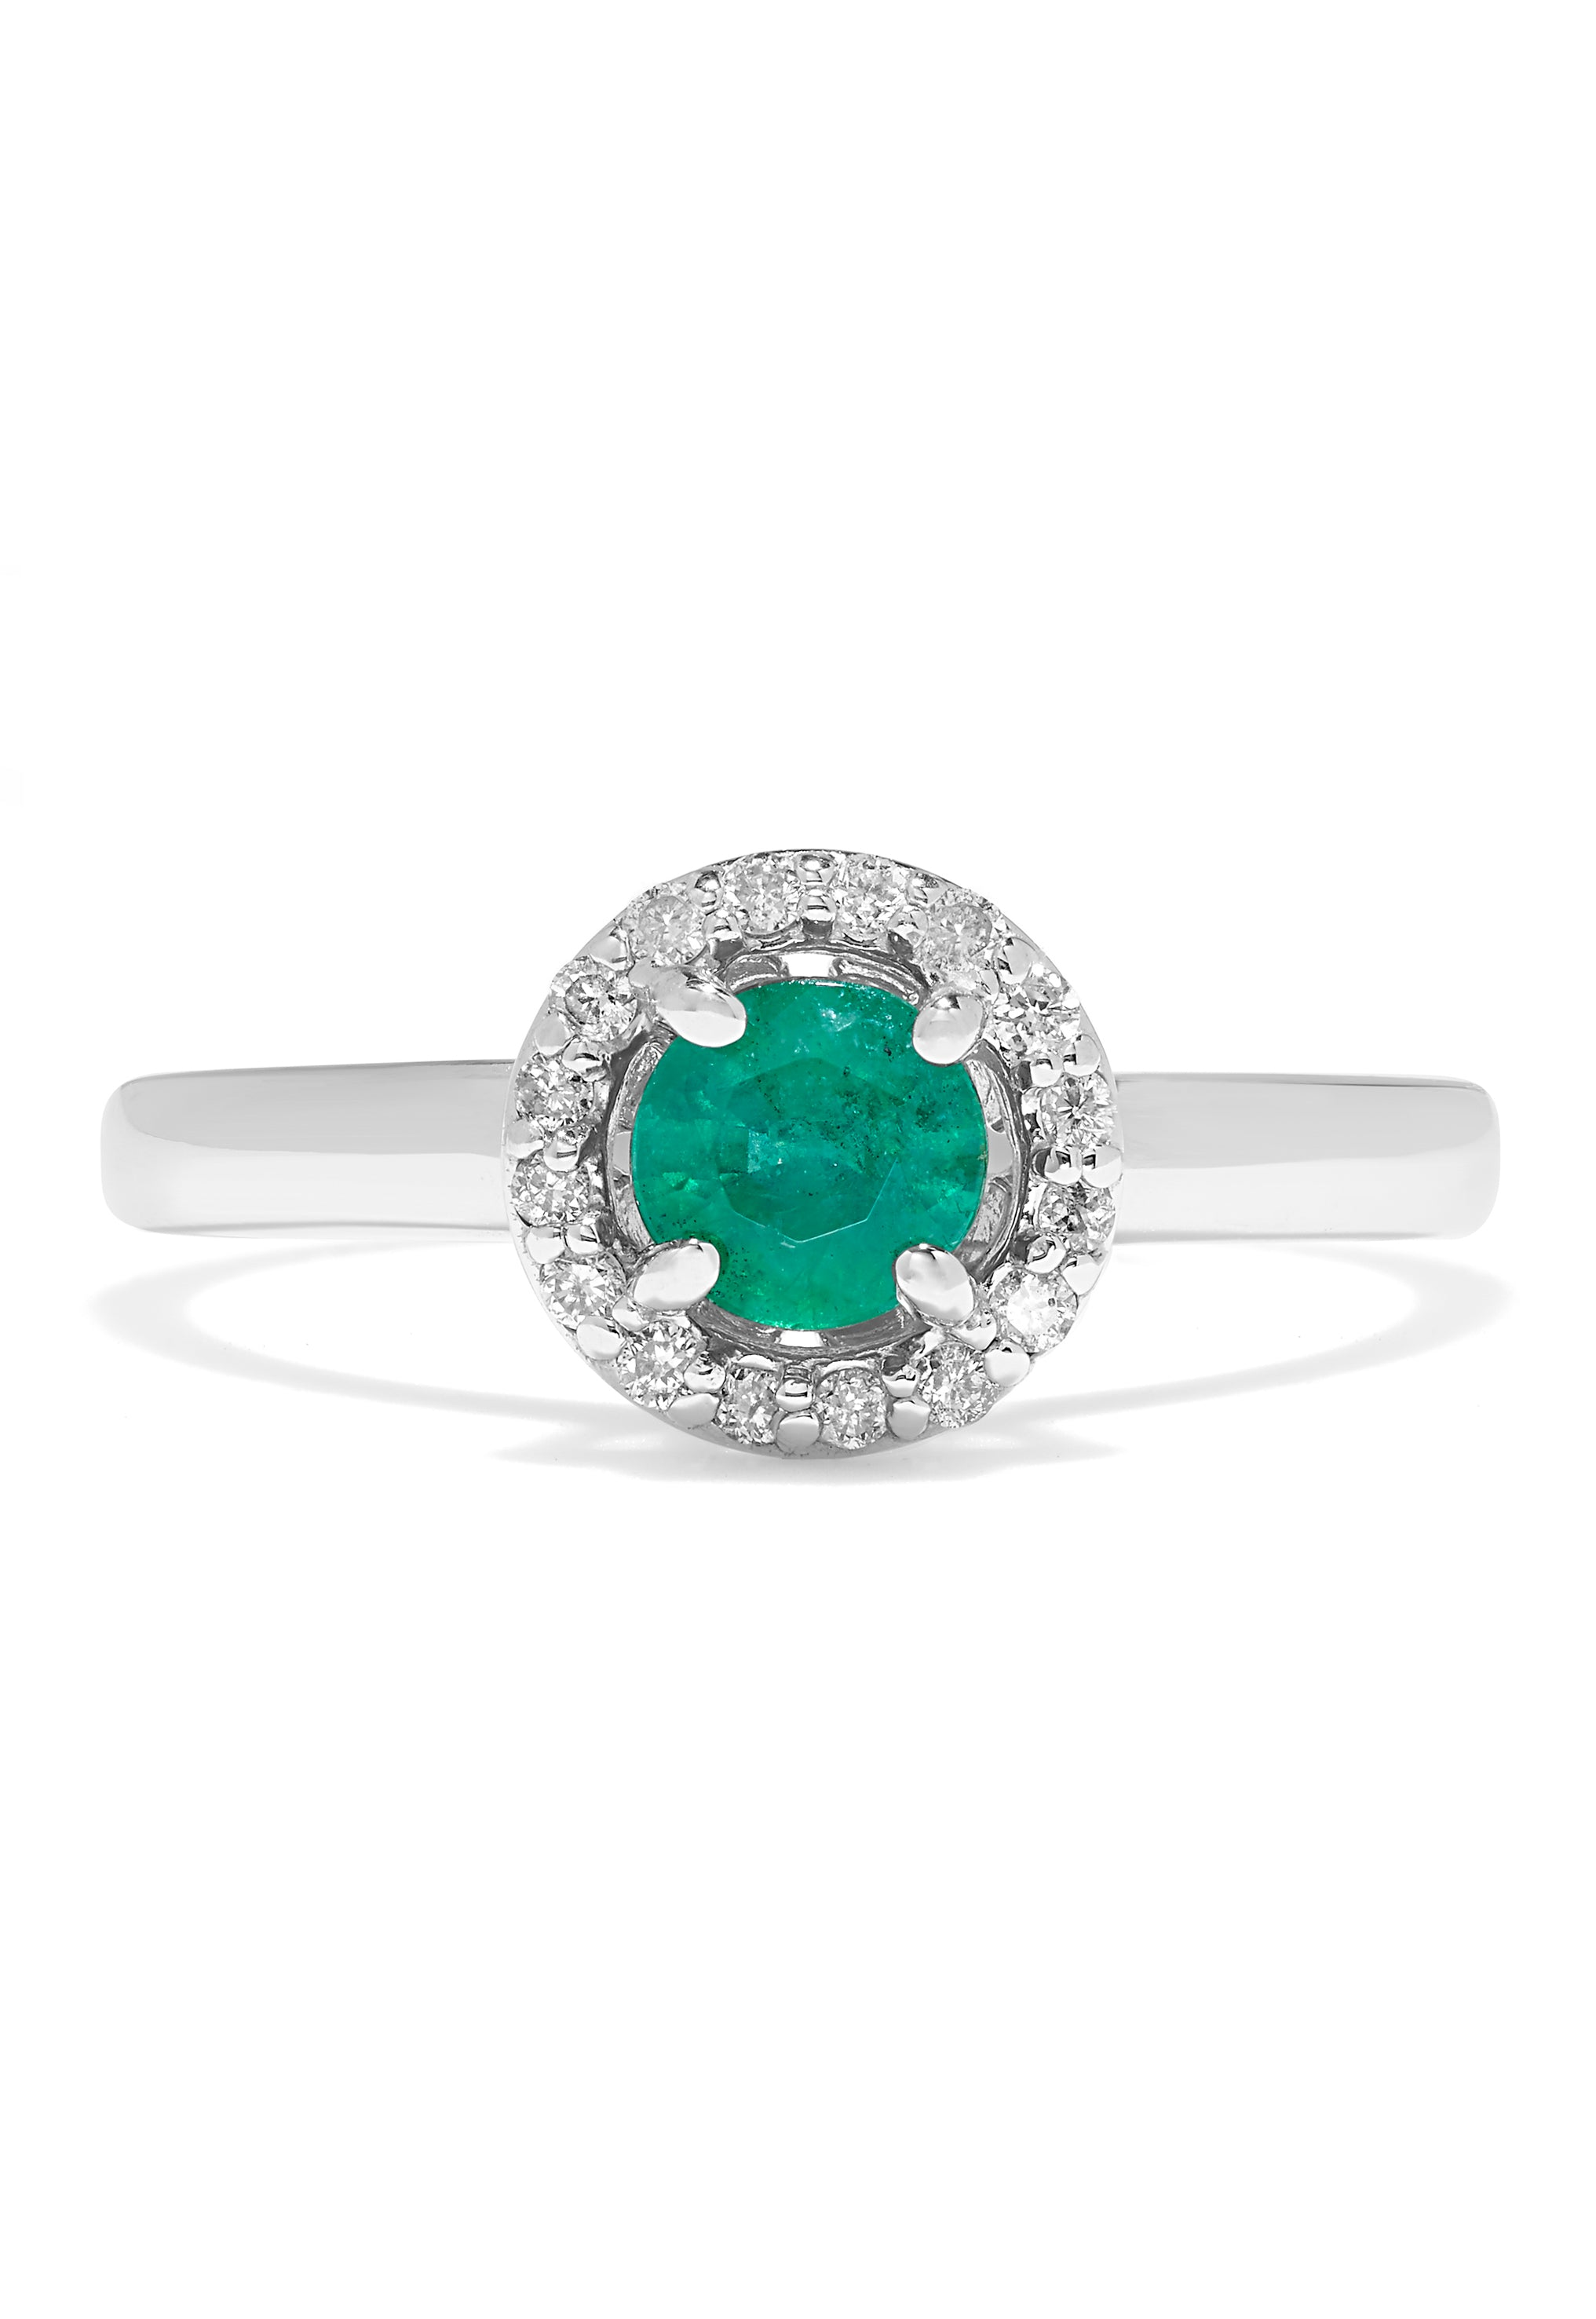 Effy Brasilica 14K White Gold Emerald and Diamond Halo Ring, 0.60 TCW